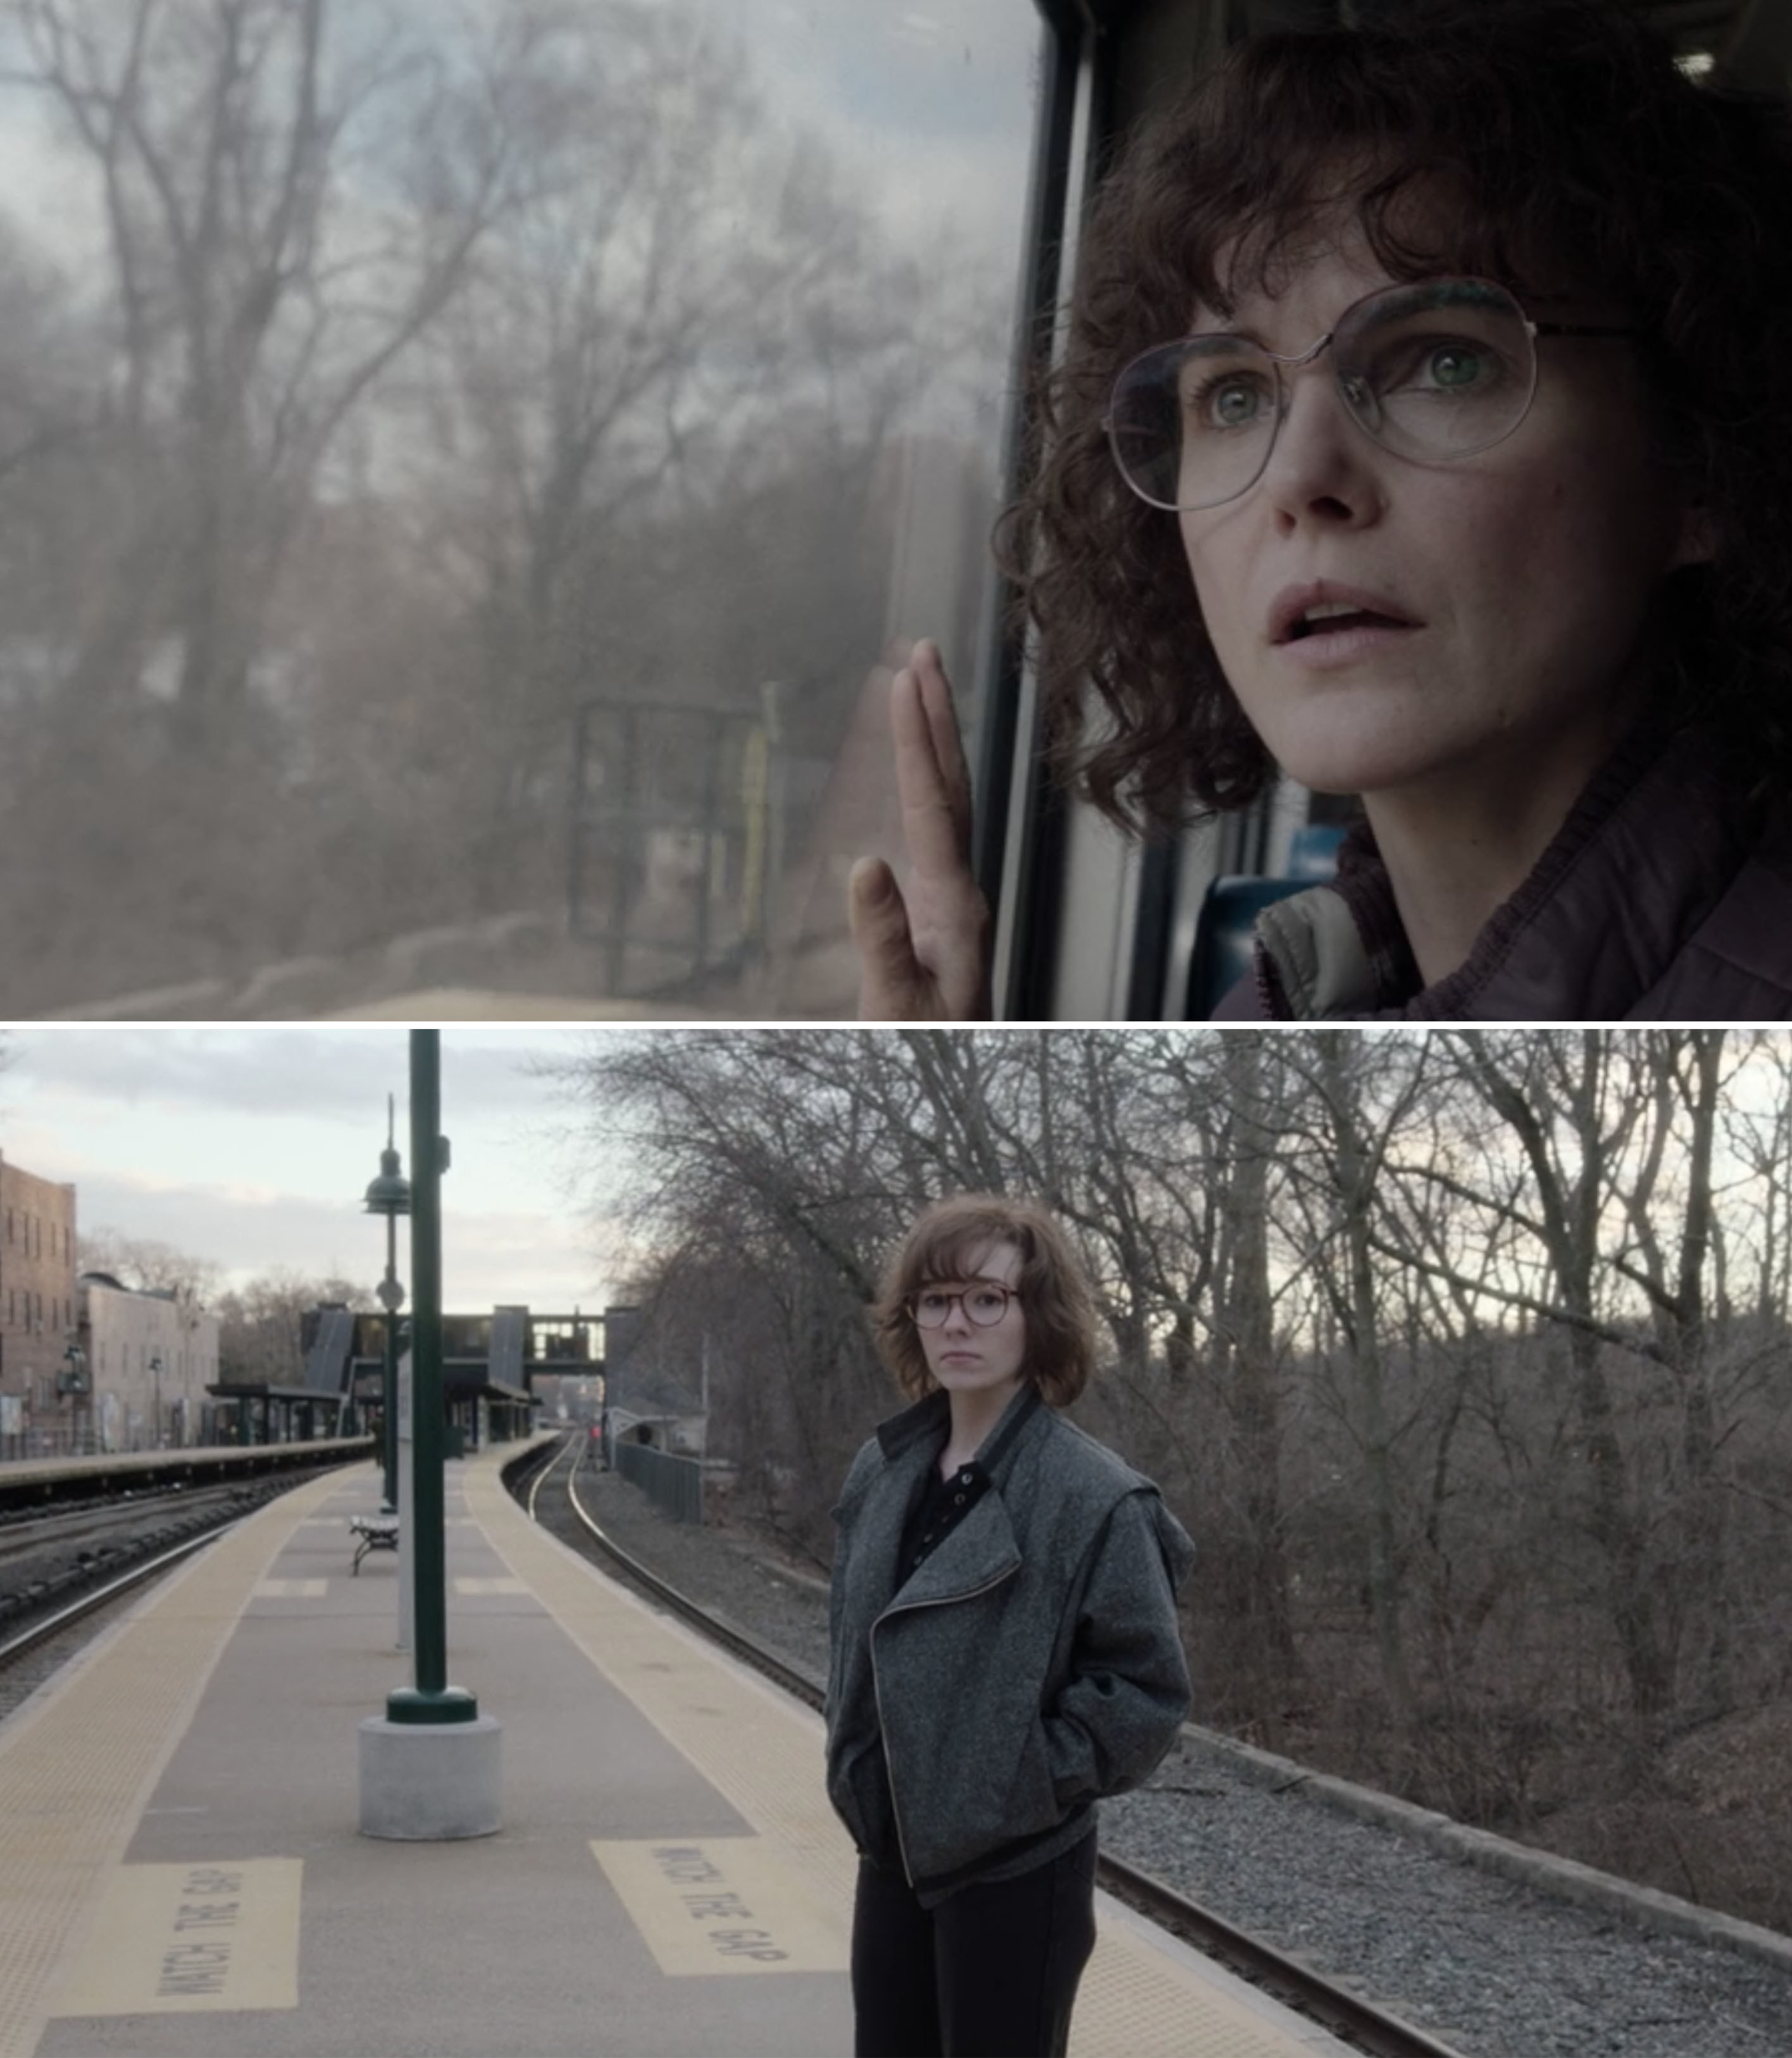 Paige standing on the train platform and Elizabeth seeing her through the window